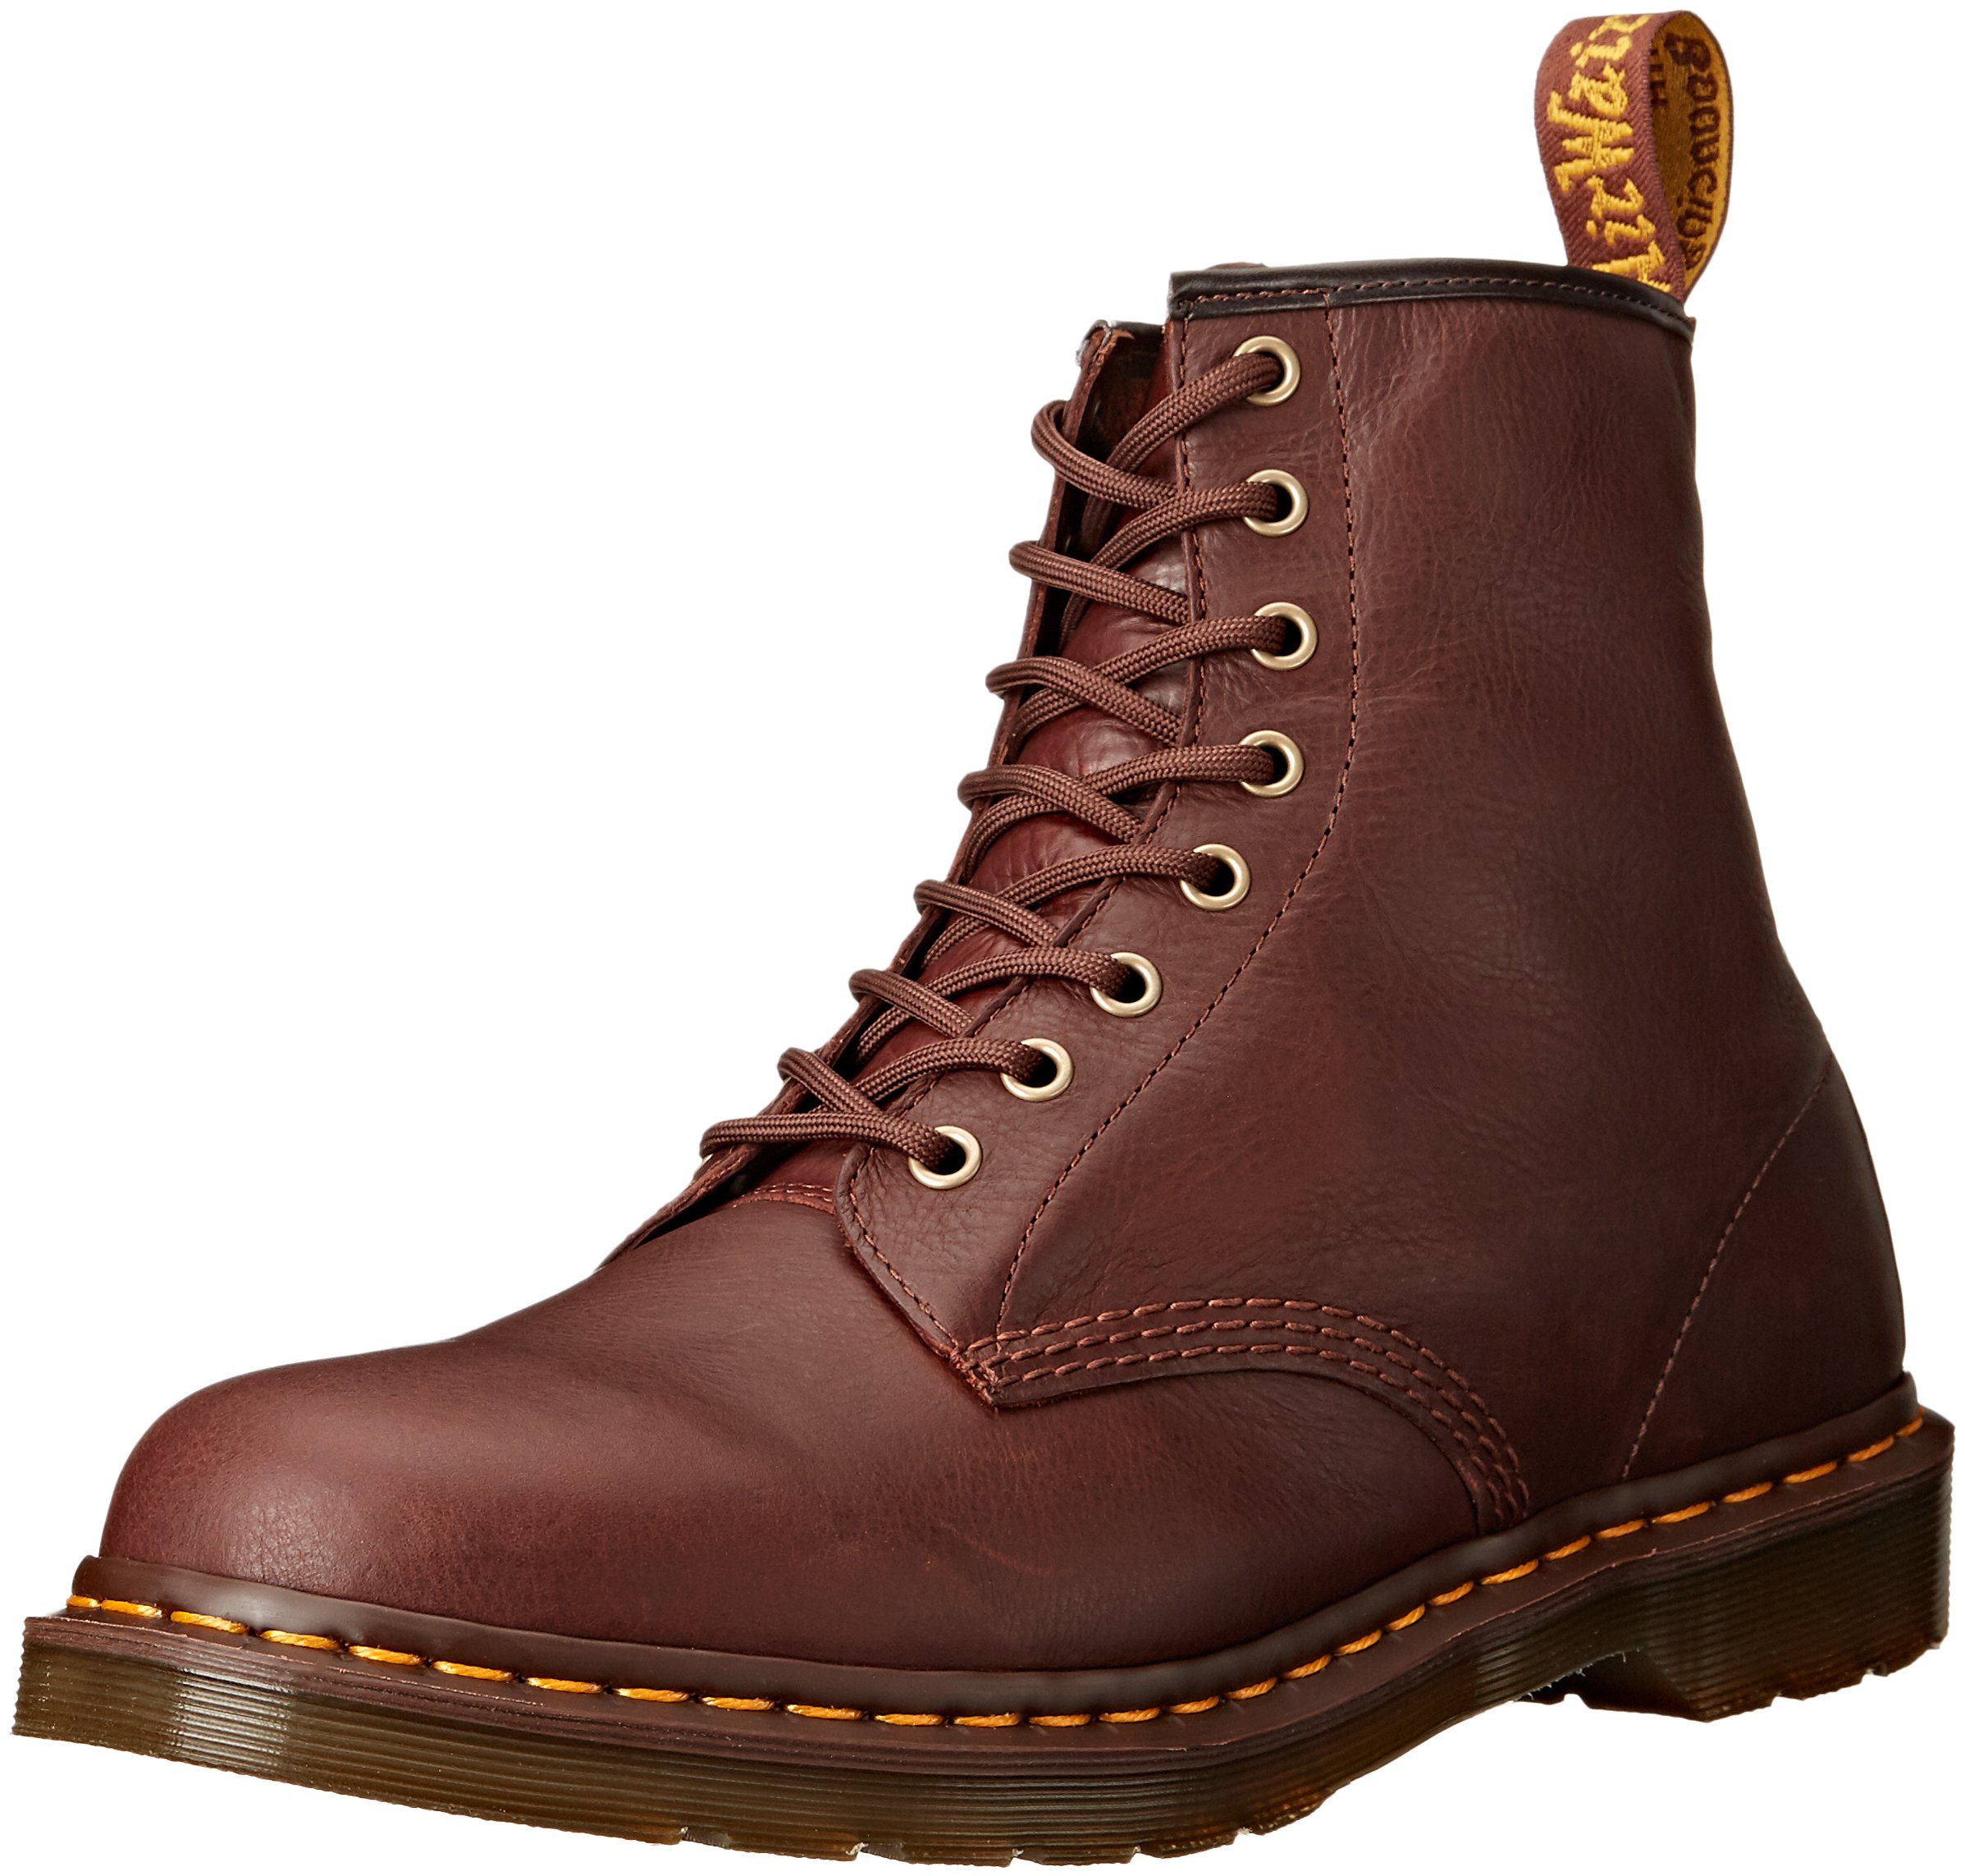 Dr. Martens Men's 1460 Carpathian Combat Boot, Tan, 9 UK/10 M US by Dr. Martens